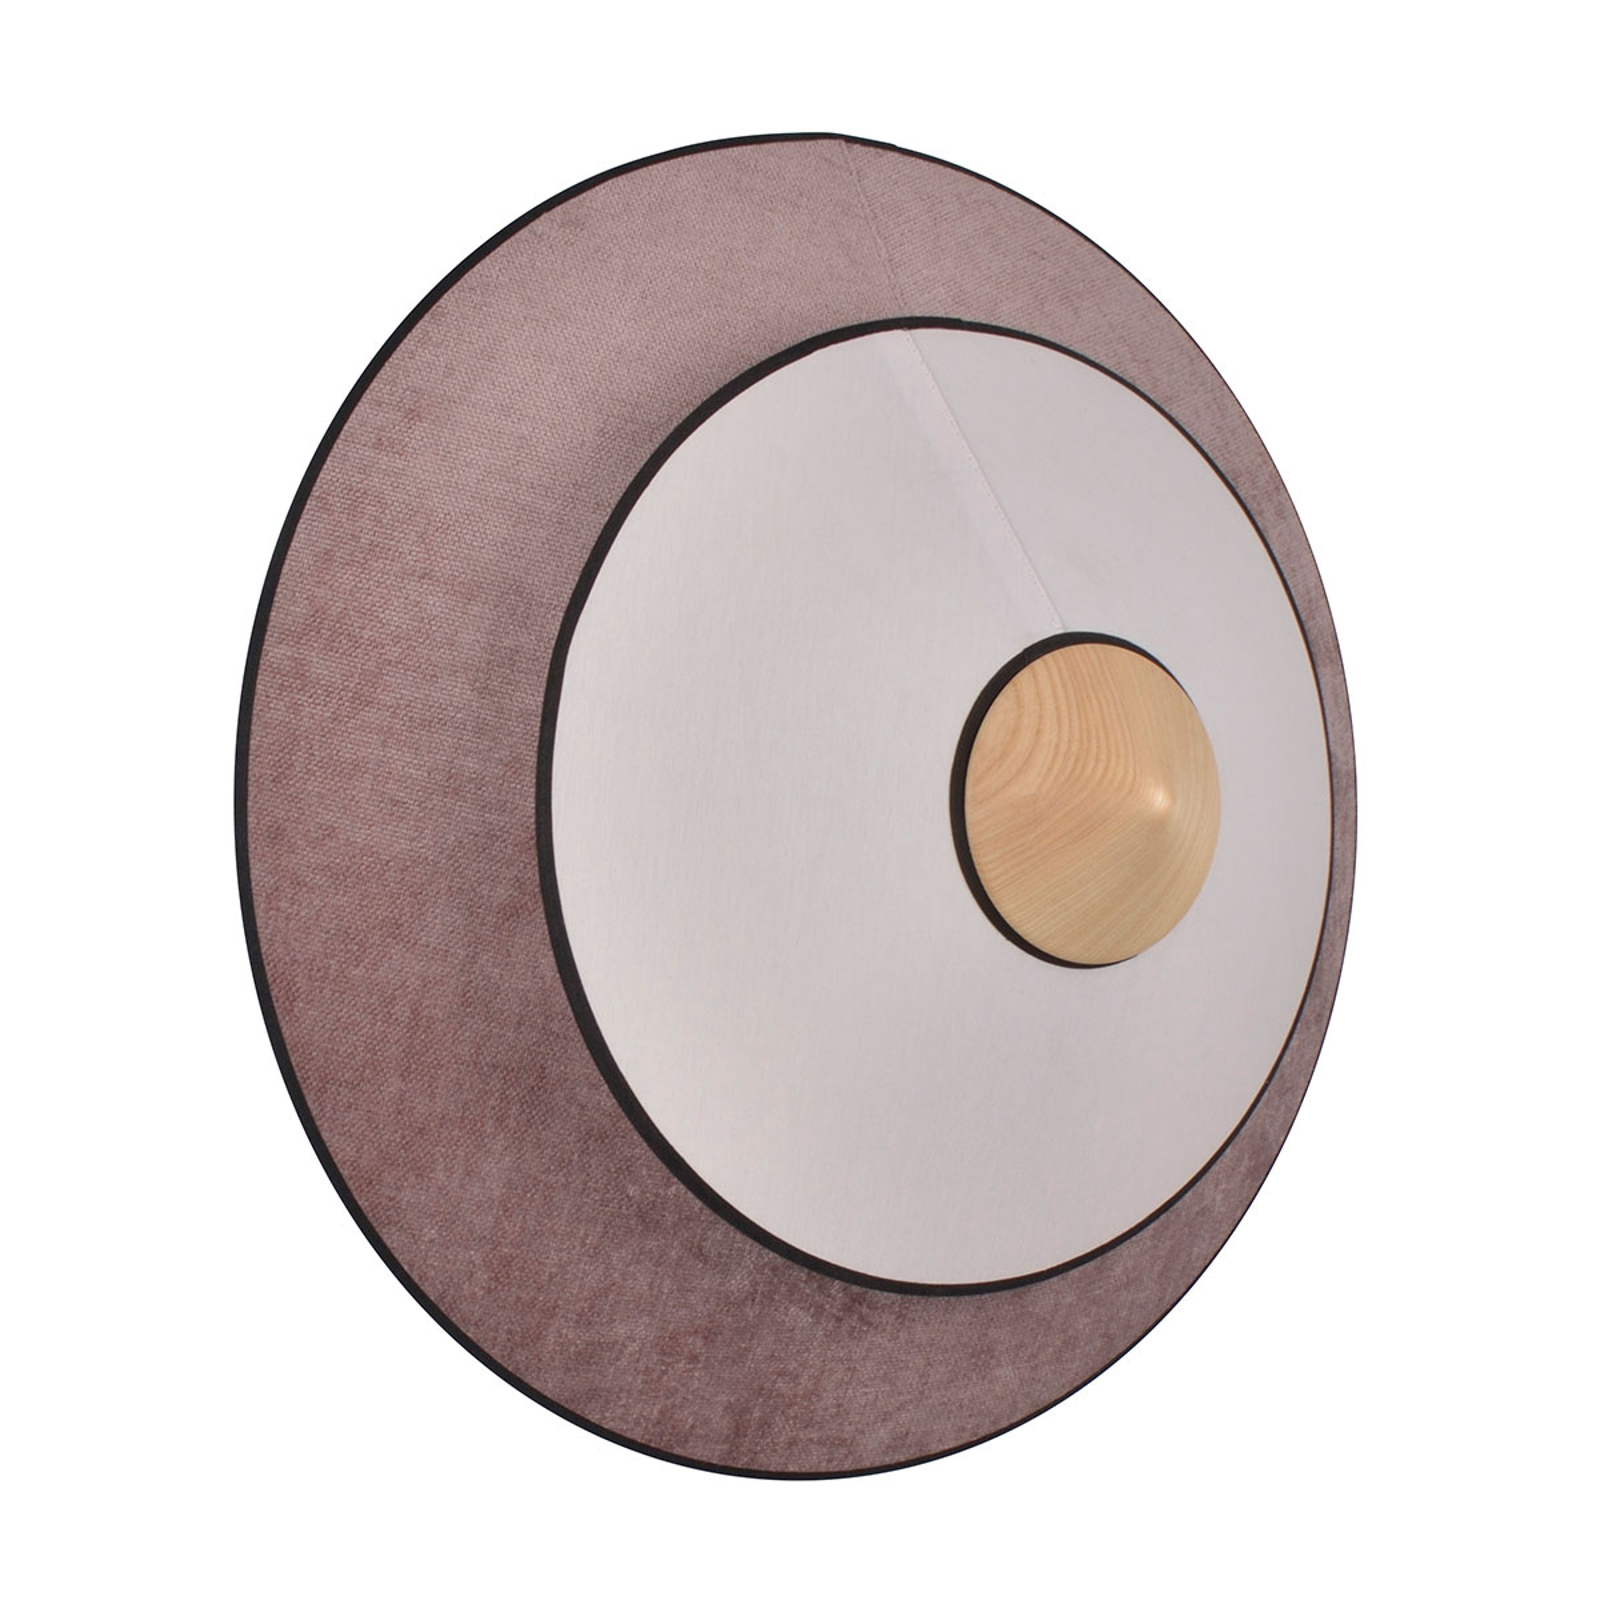 Forestier Cymbal S applique LED, cipria